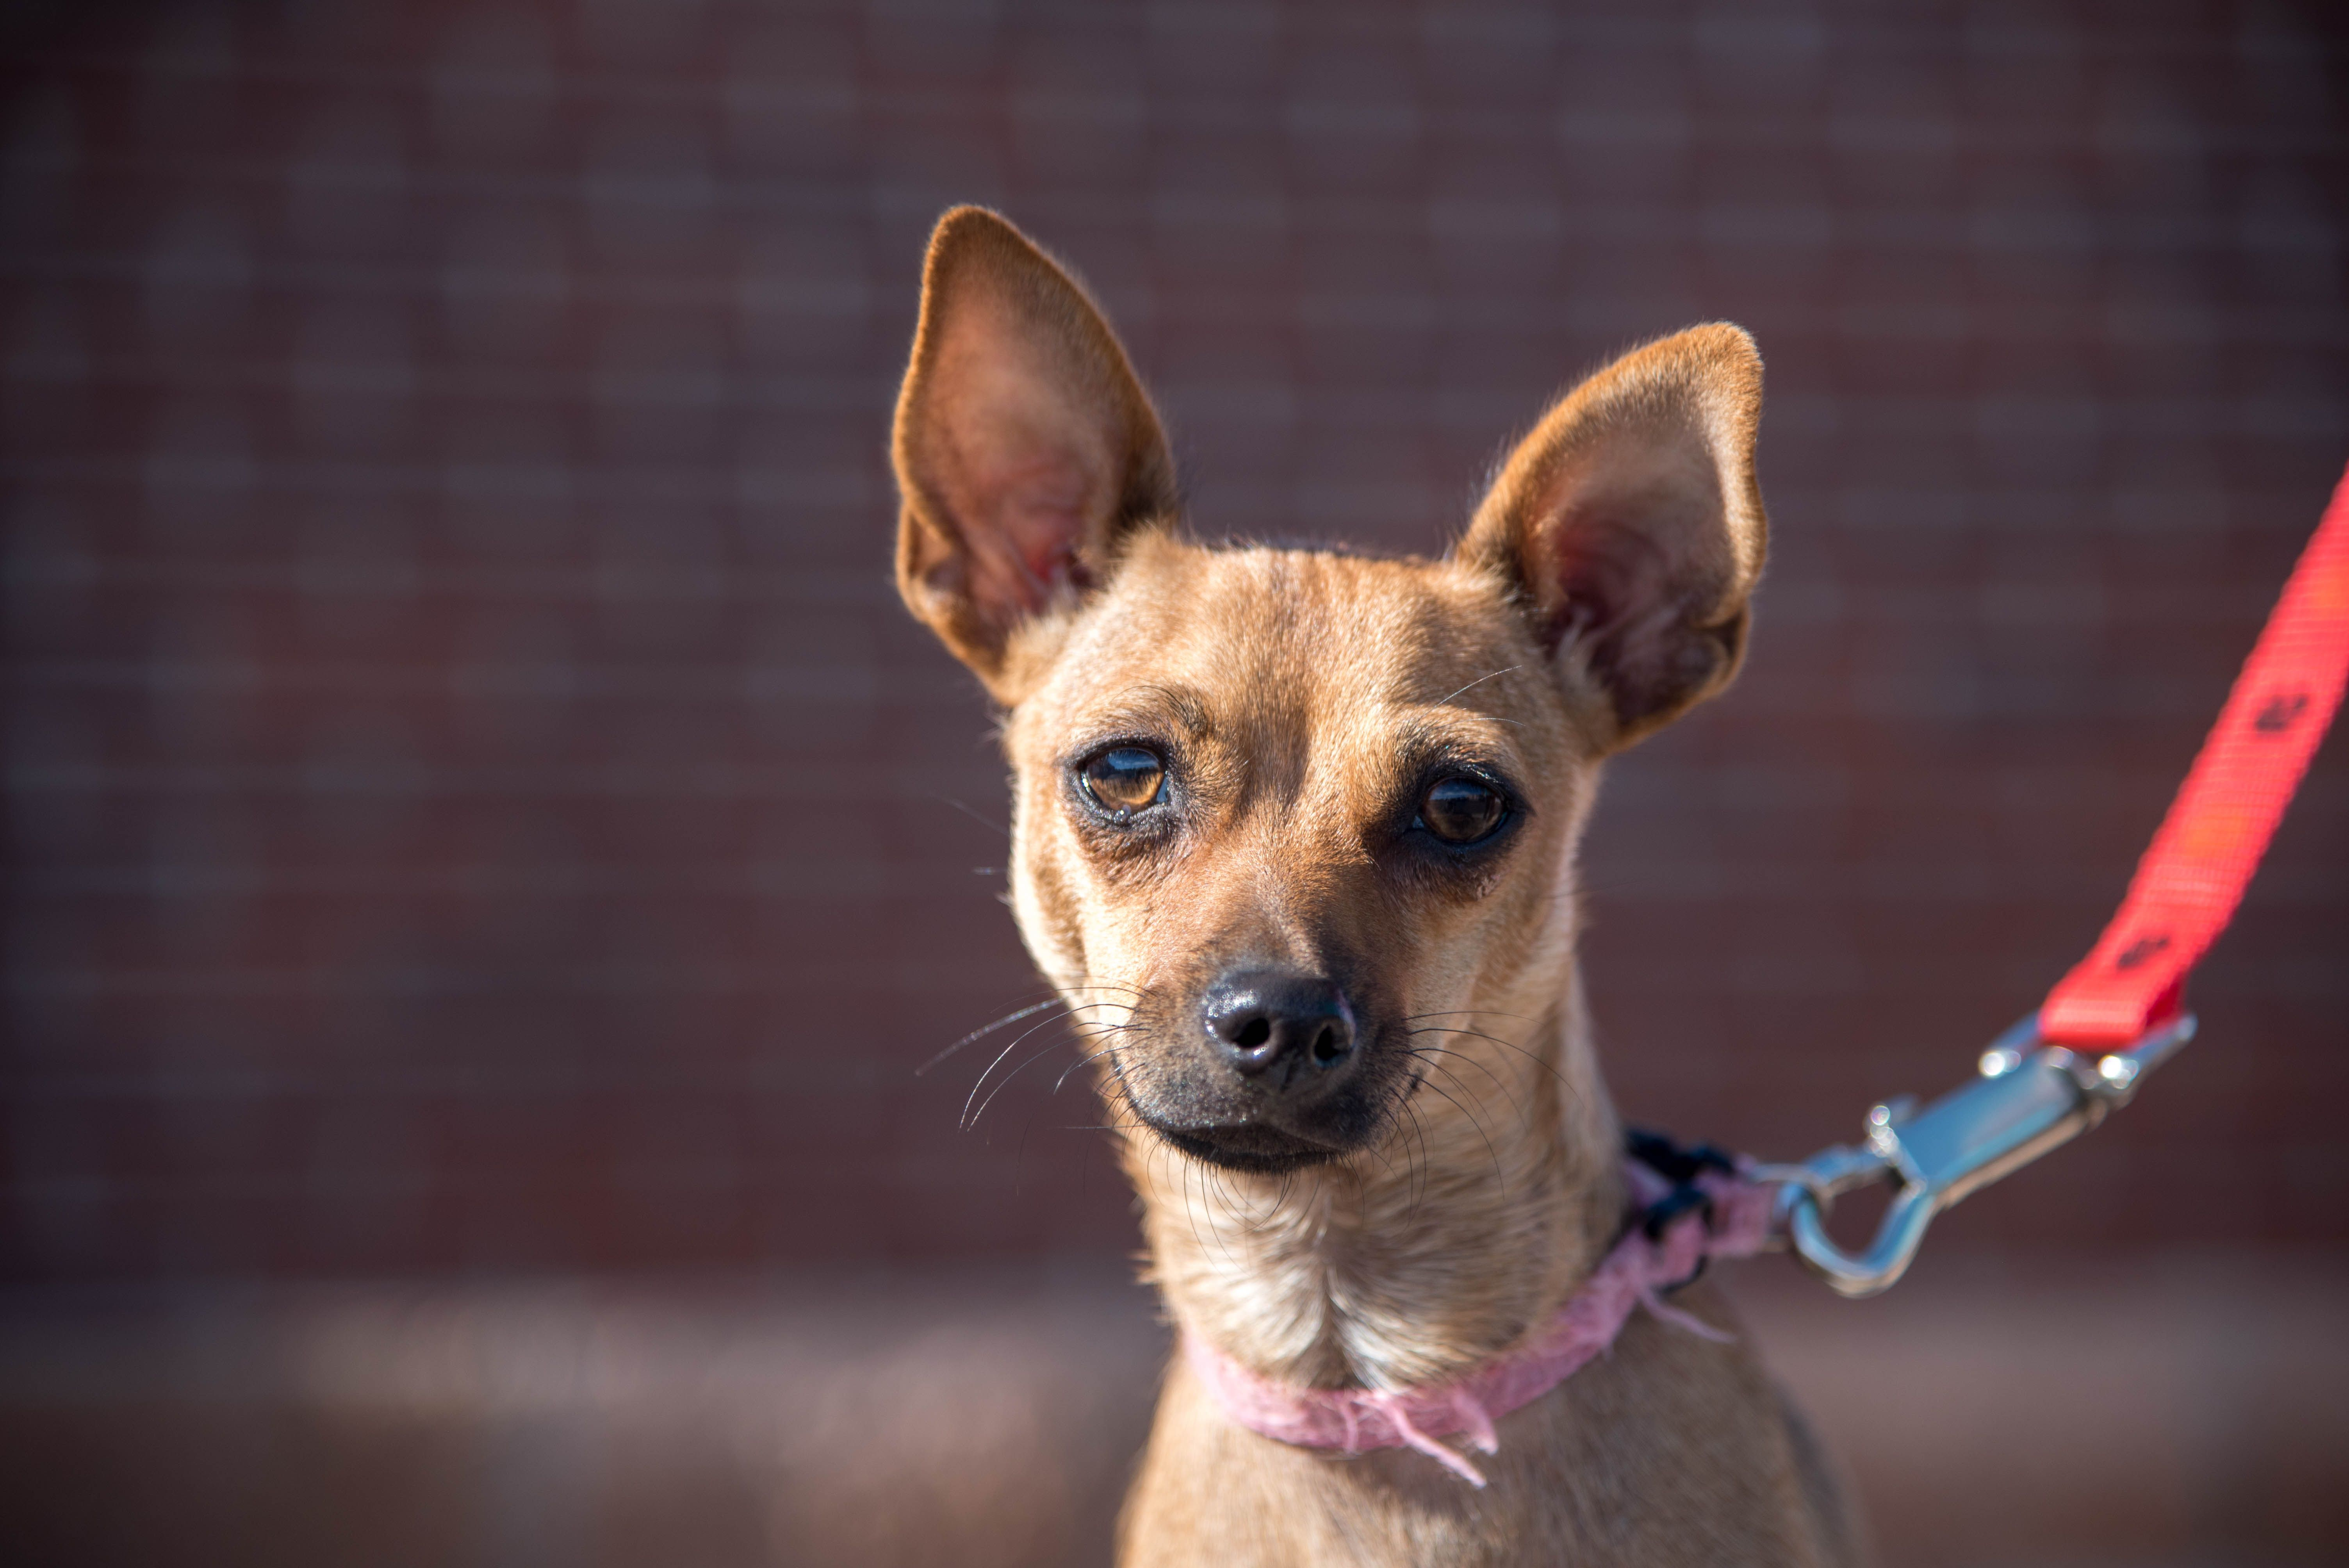 Chiweenie Dog For Adoption In Colorado Springs Co Adn 521698 On Puppyfinder Com Gender Male Age Young Chiweenie Dogs Dog Adoption Chiweenie